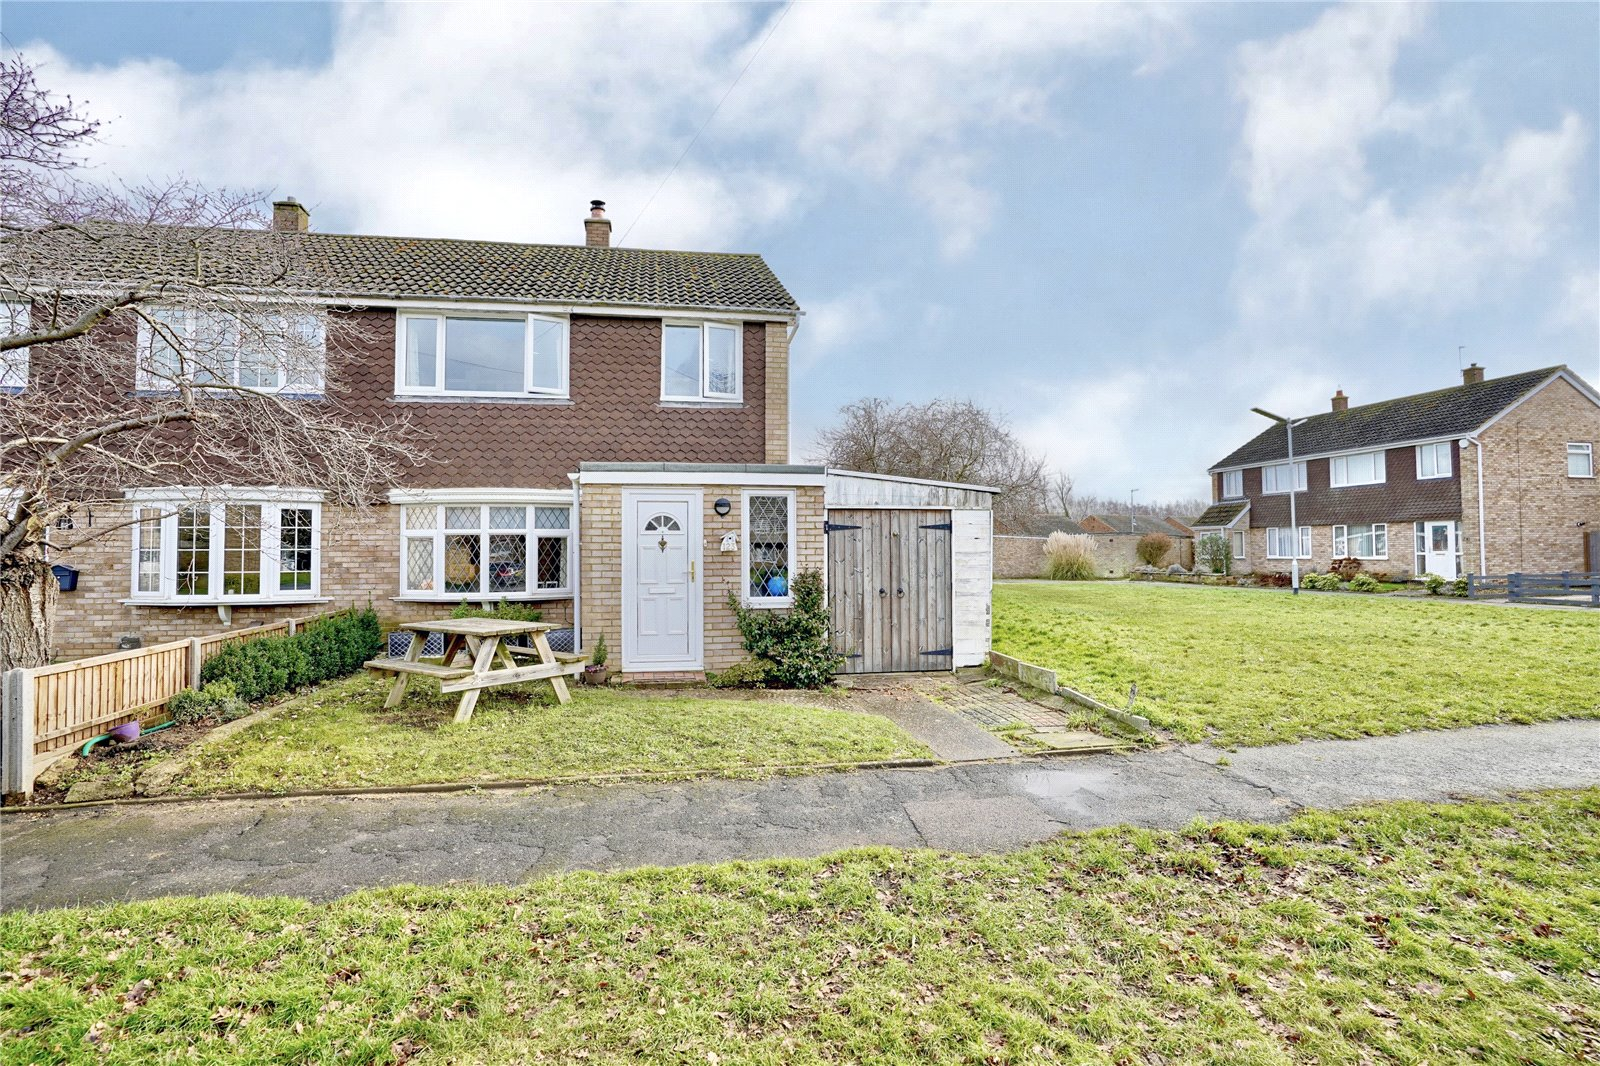 3 bed house for sale in Little Paxton, PE19 6ND, PE19